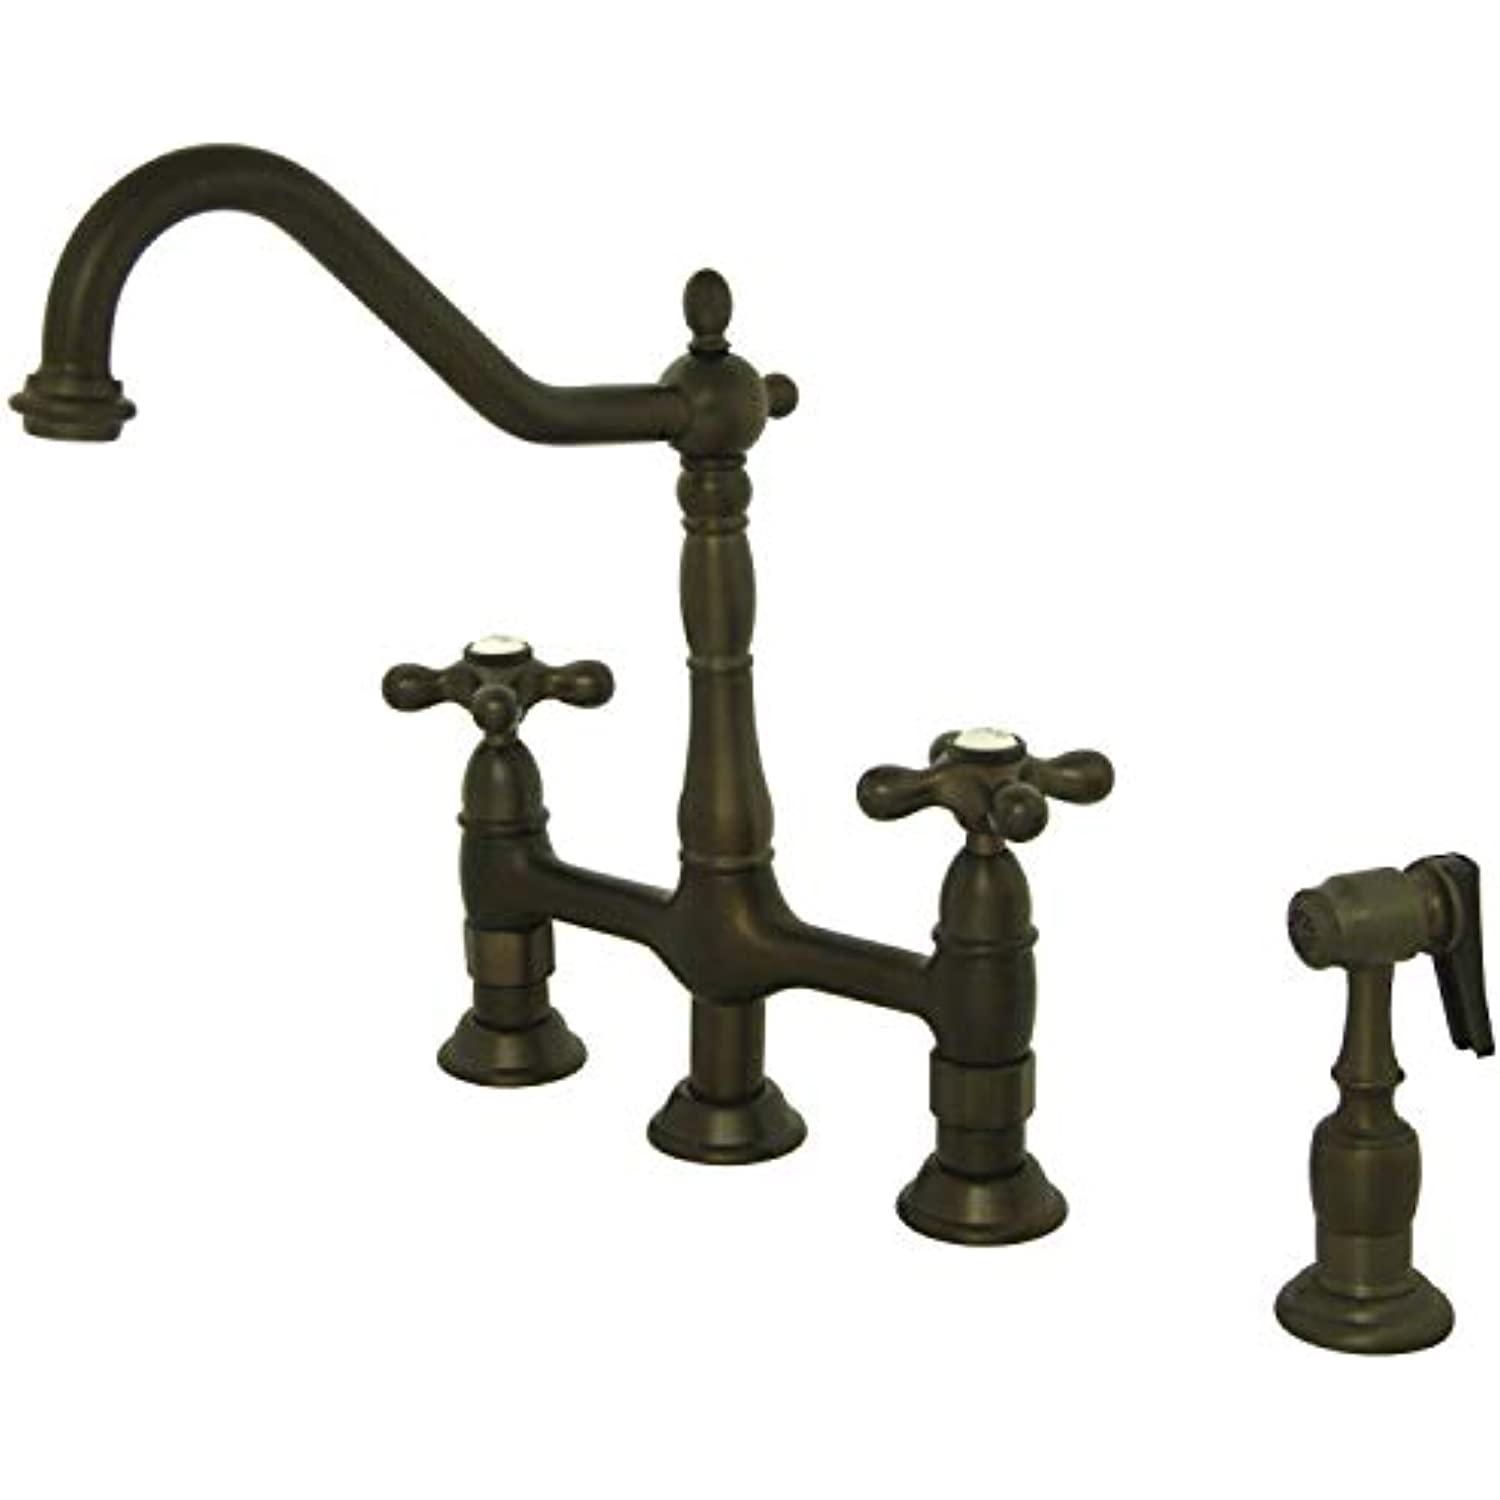 Kingston Brass KS1275AXBS Heritage 8 Kitchen Faucet with Brass Sprayer, Oil Rubbed Bronze, 8-3/4 Spout Reach